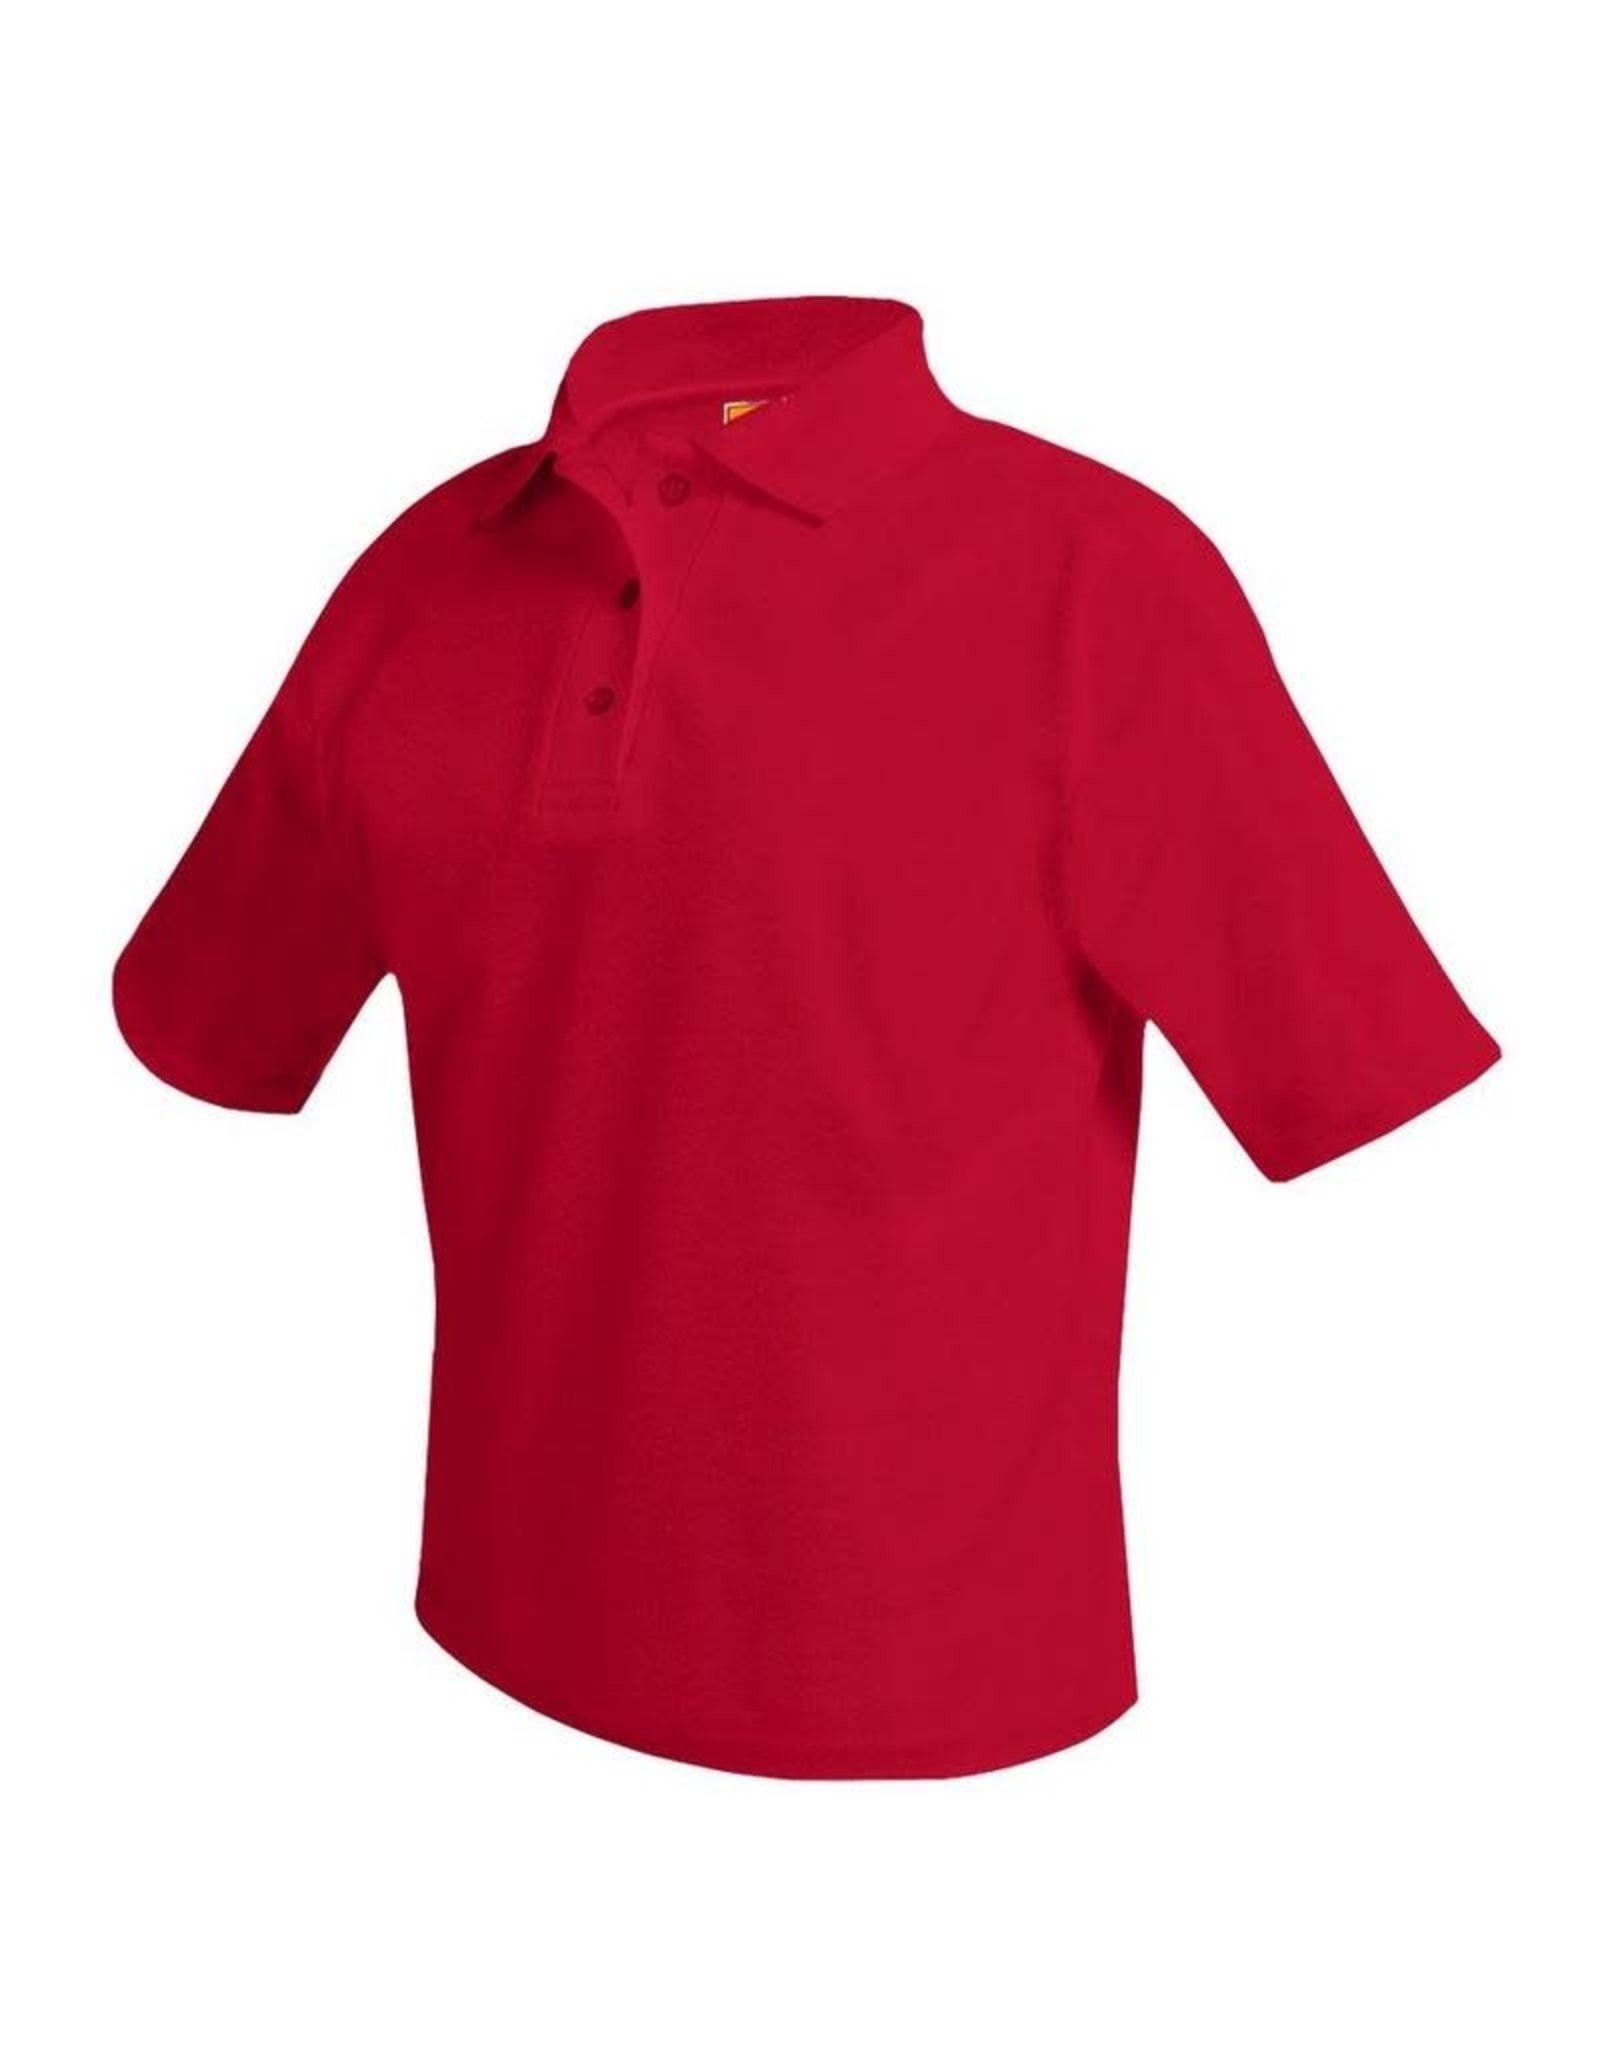 UNIFORM Final Sale - No refund, no exchange. Polo Unisex Short Sleeve Shirt